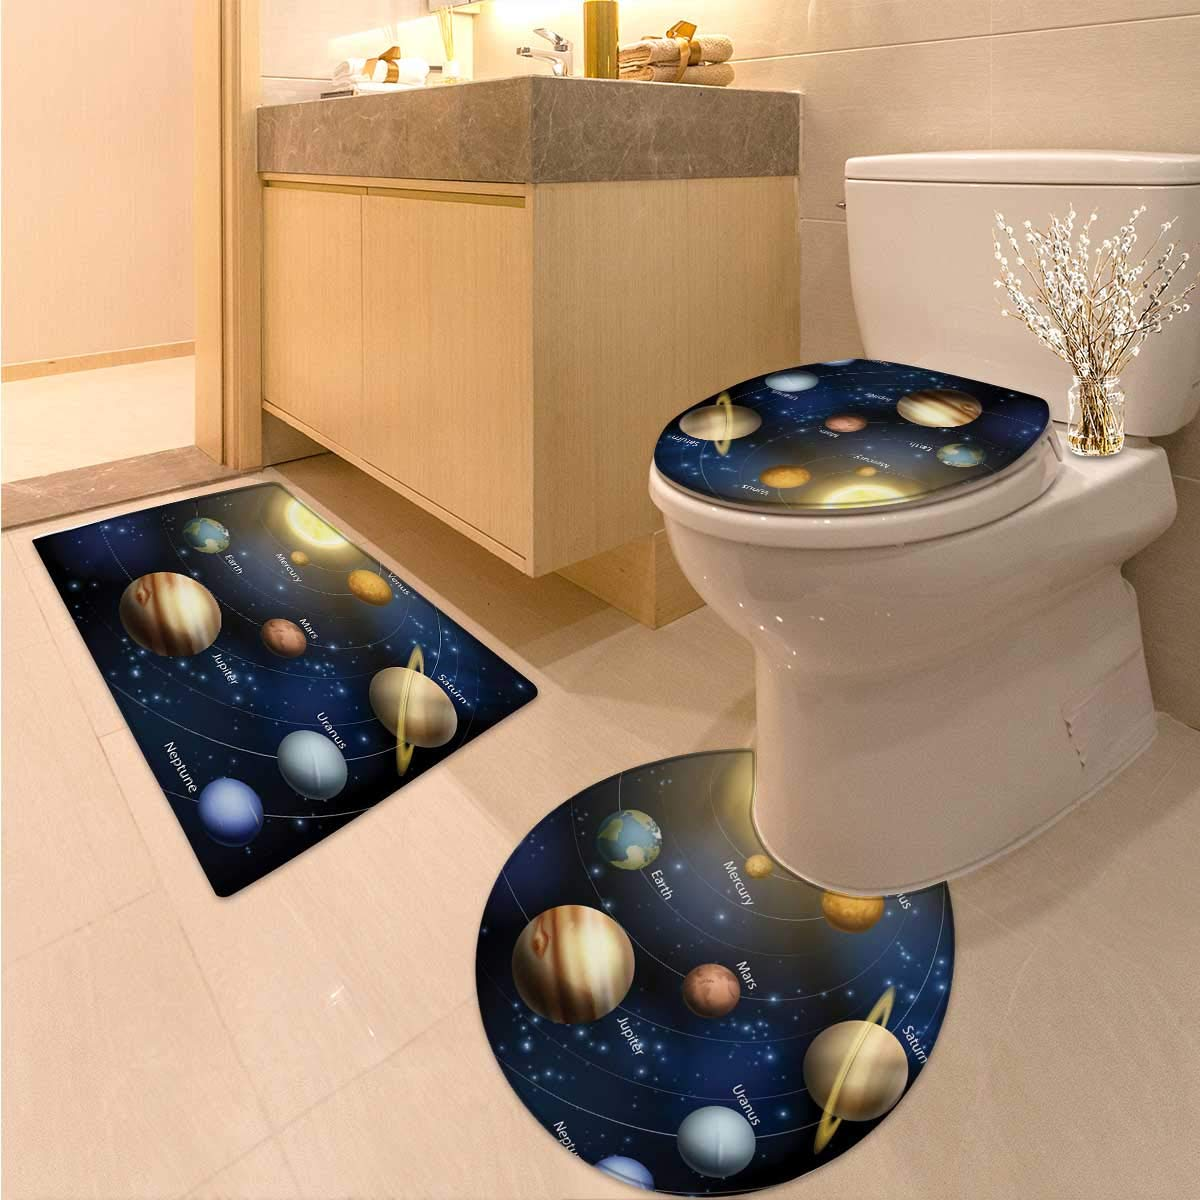 Anhuthree Educational Toilet Carpet Floor mat Set Realistic Illustration of Solar System Sun Planets Orbit Astronomy Outer Space Non Slip Bath Shower Rug Multicolor